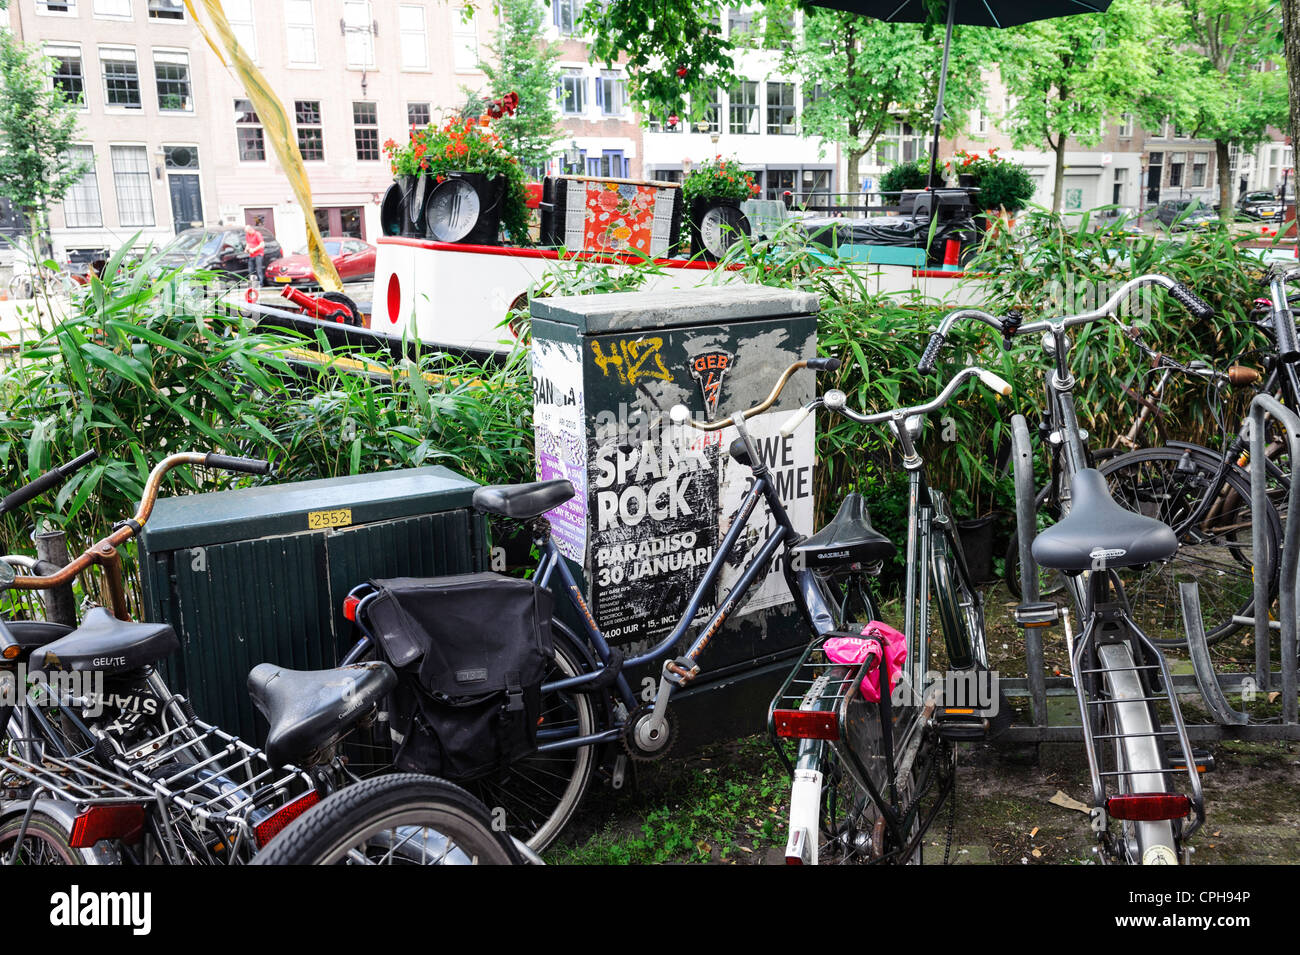 Bikes on the streets of Amsterdam, Netherlands - Stock Image